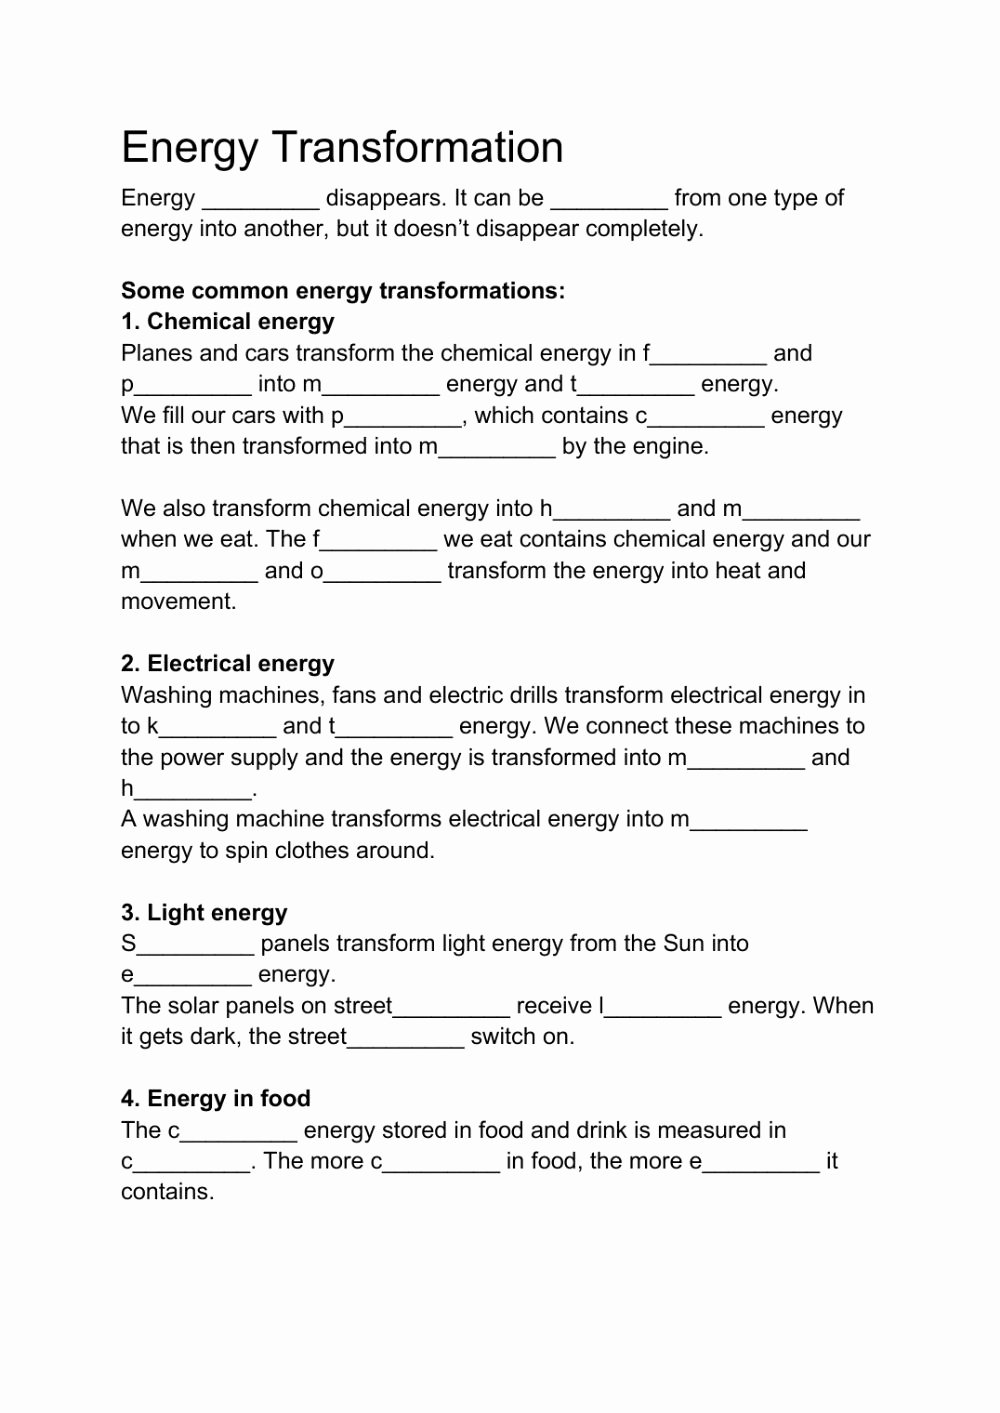 Energy Transformation Worksheet Answer Key Inspirational Energy Transformation Interactive Worksheet